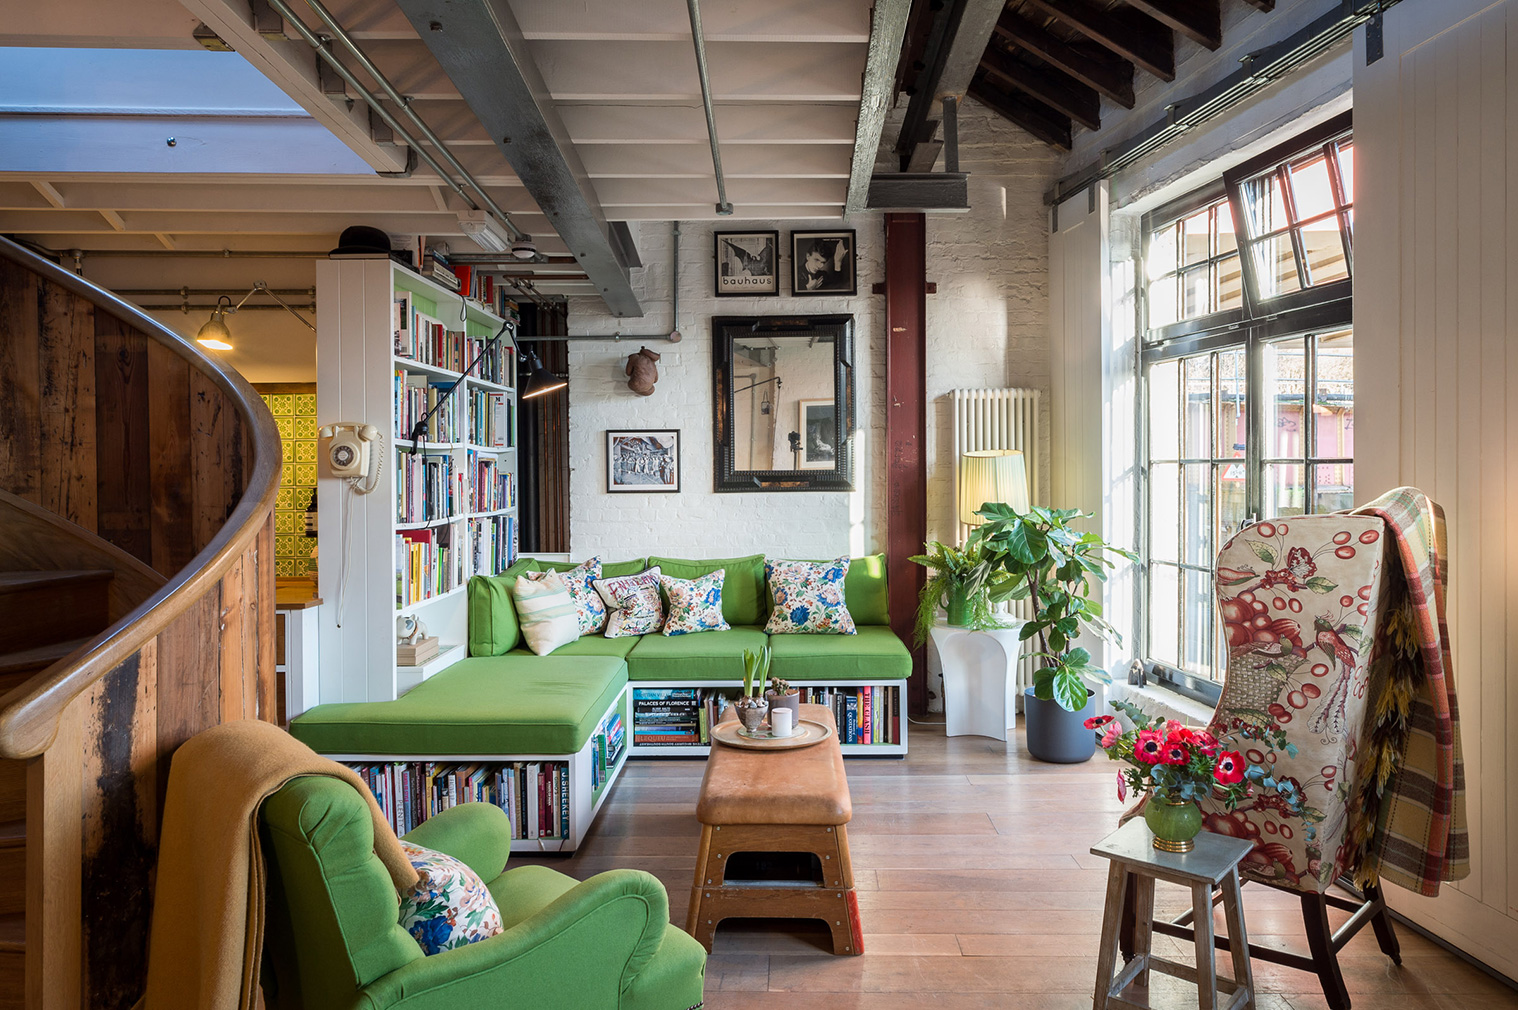 Property of the week a converted victorian furniture warehouse in london the modern house